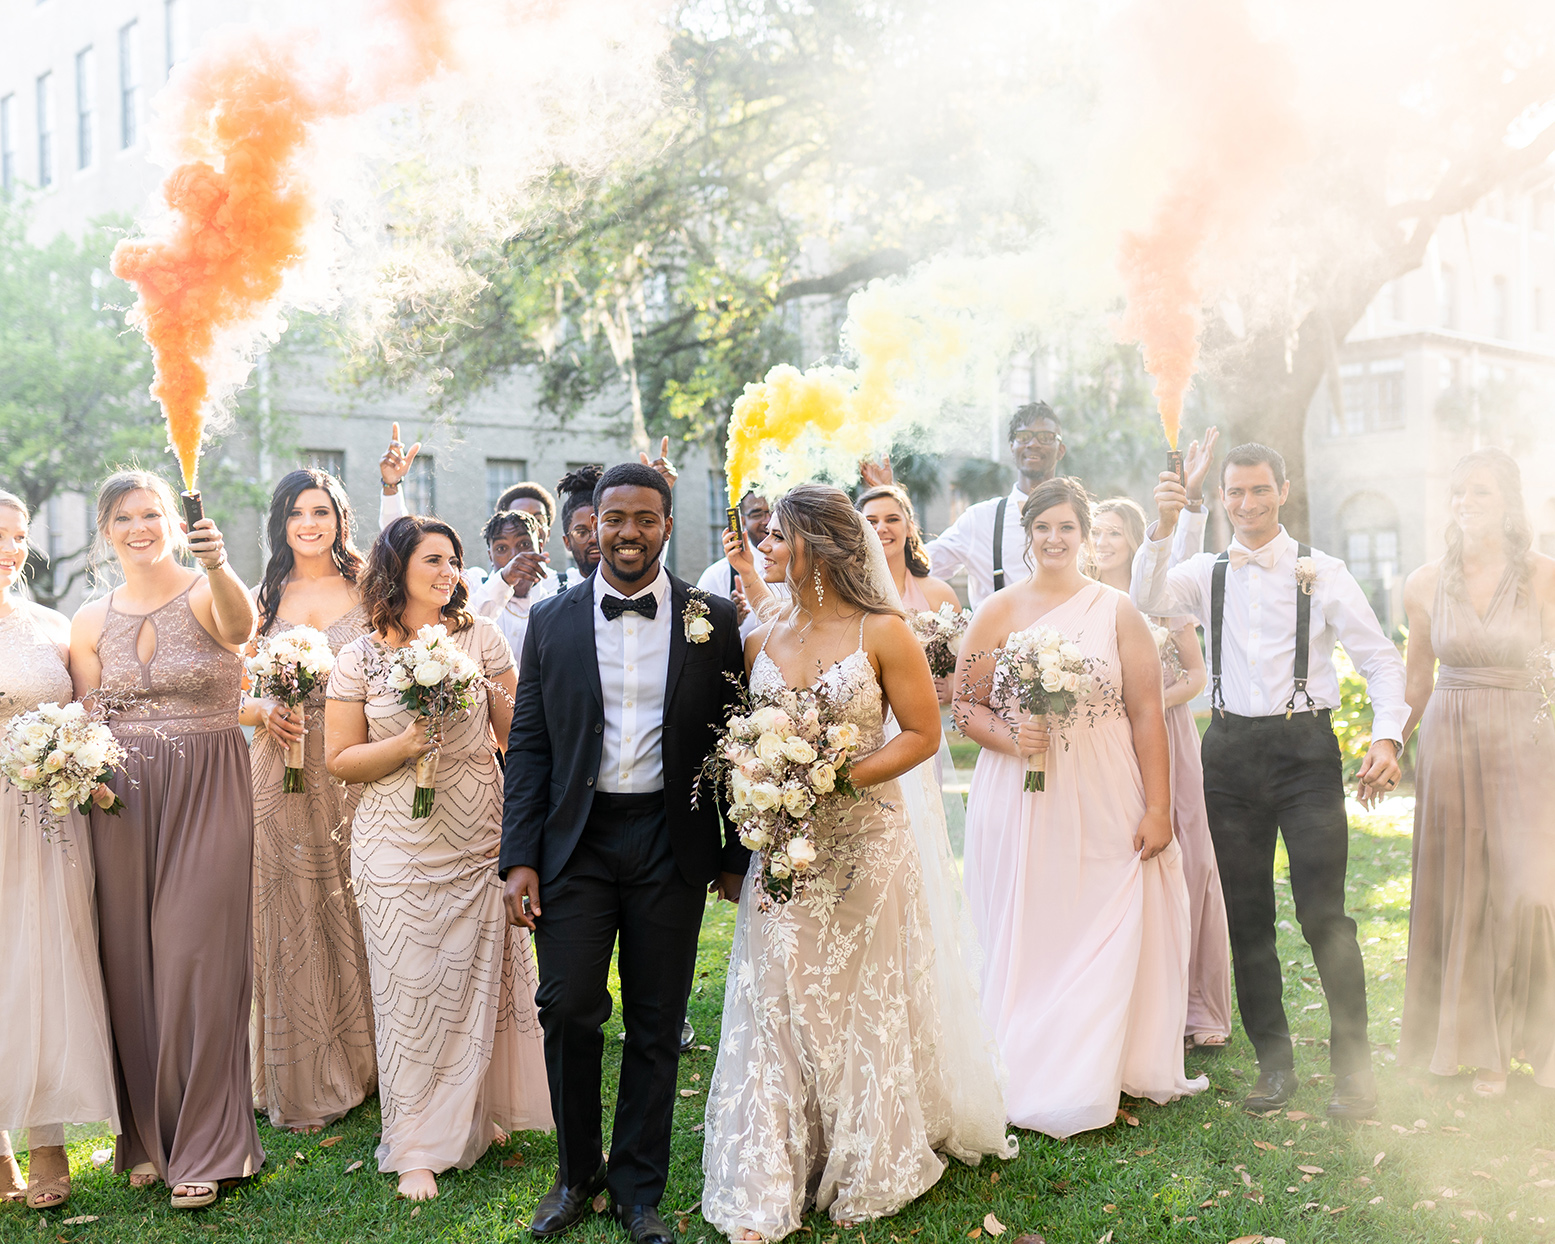 wedding couple walking with wedding party setting off colorful smoke bombs